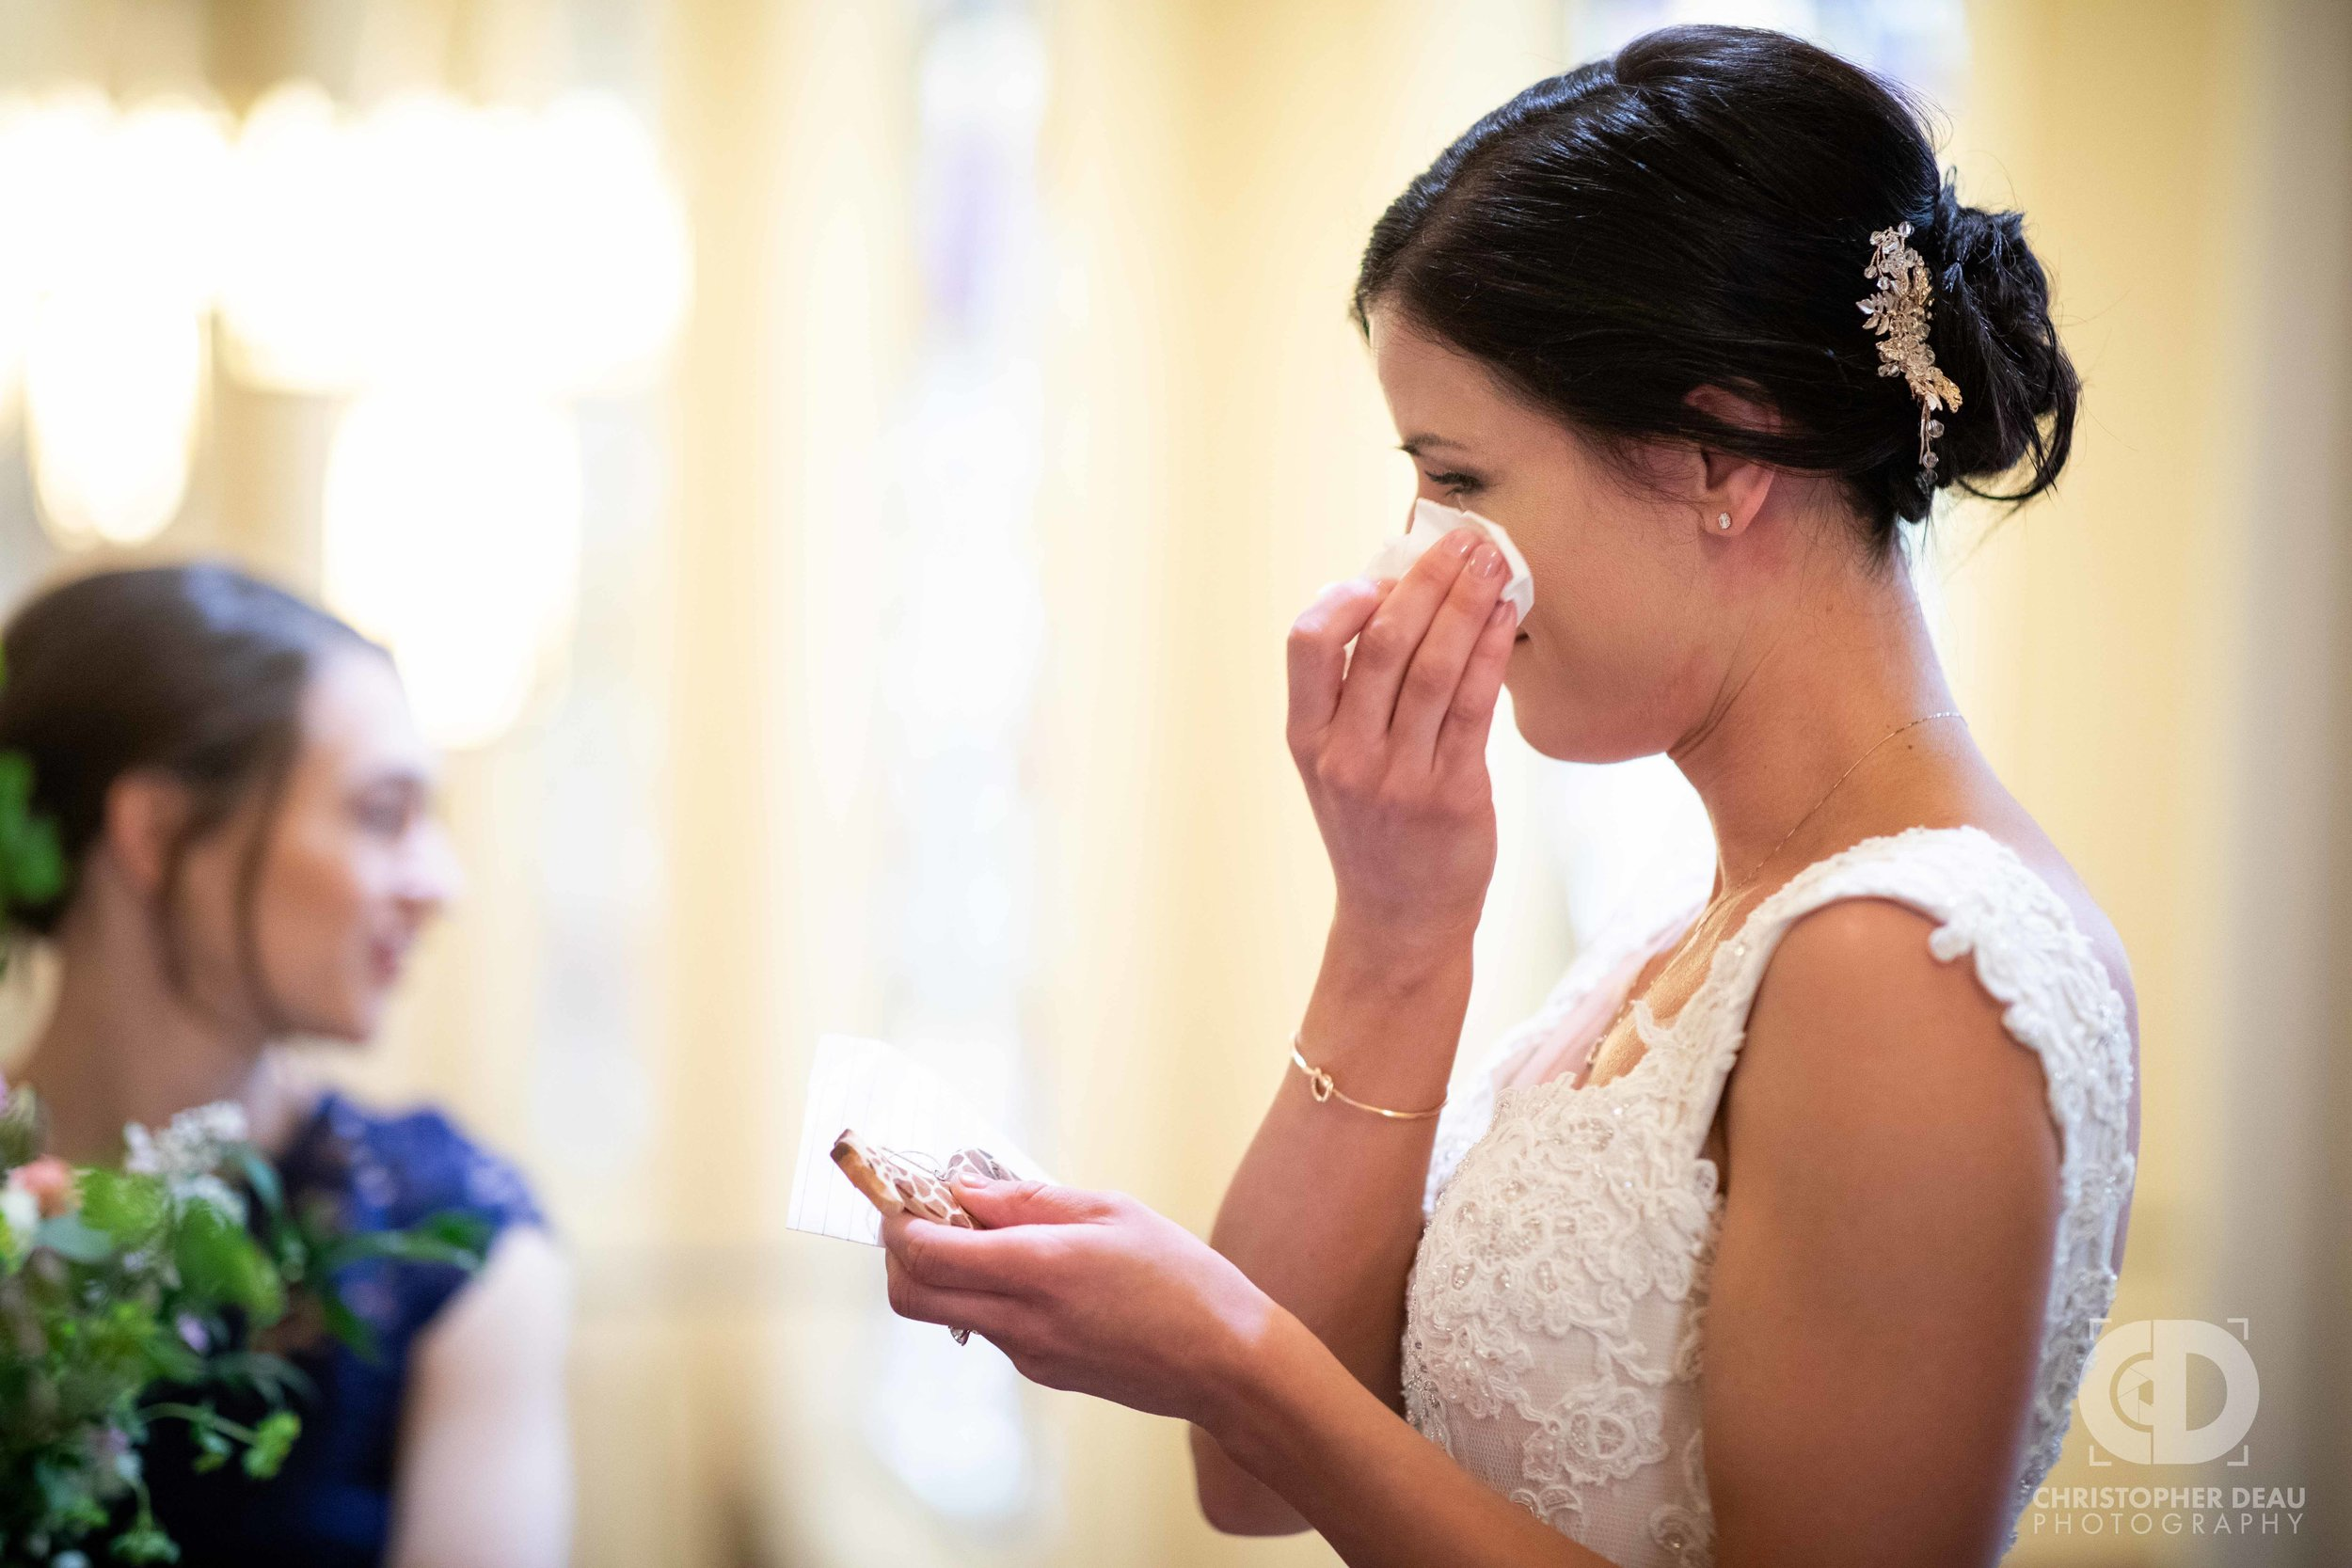 The bride crying while reading a letter from the groom